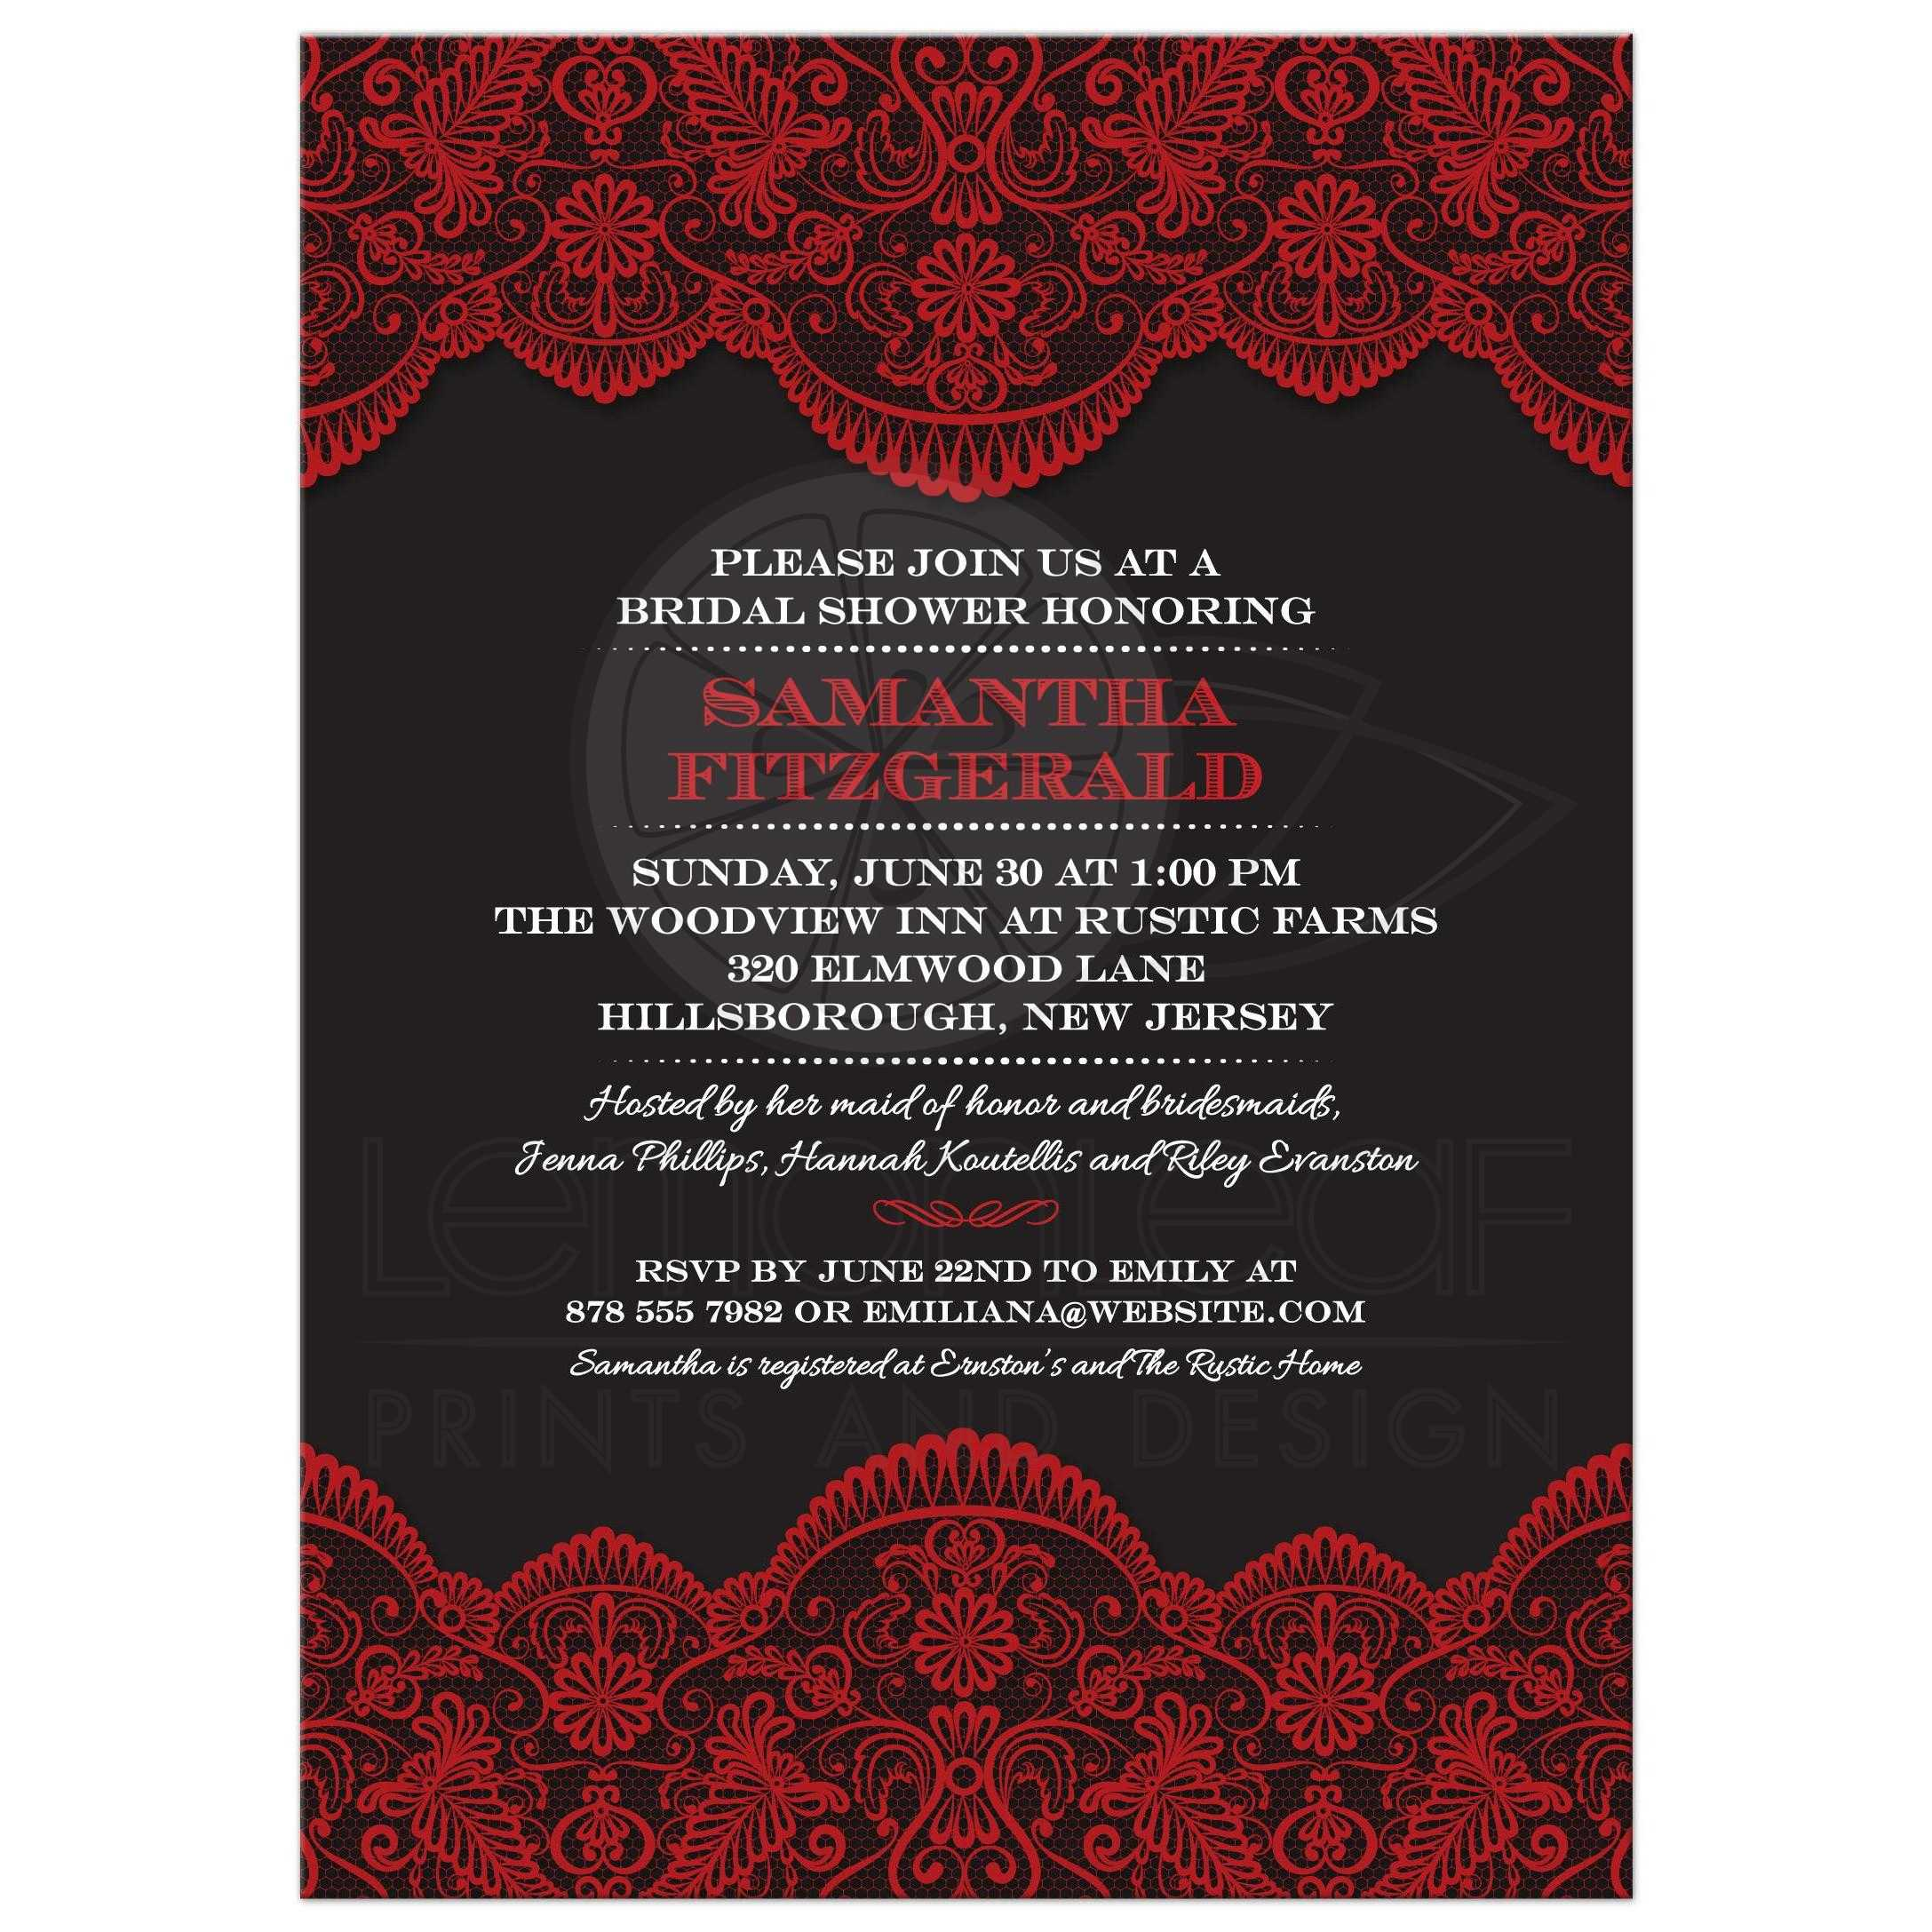 Bridal Wedding Shower invitation - Sheer Red Lace